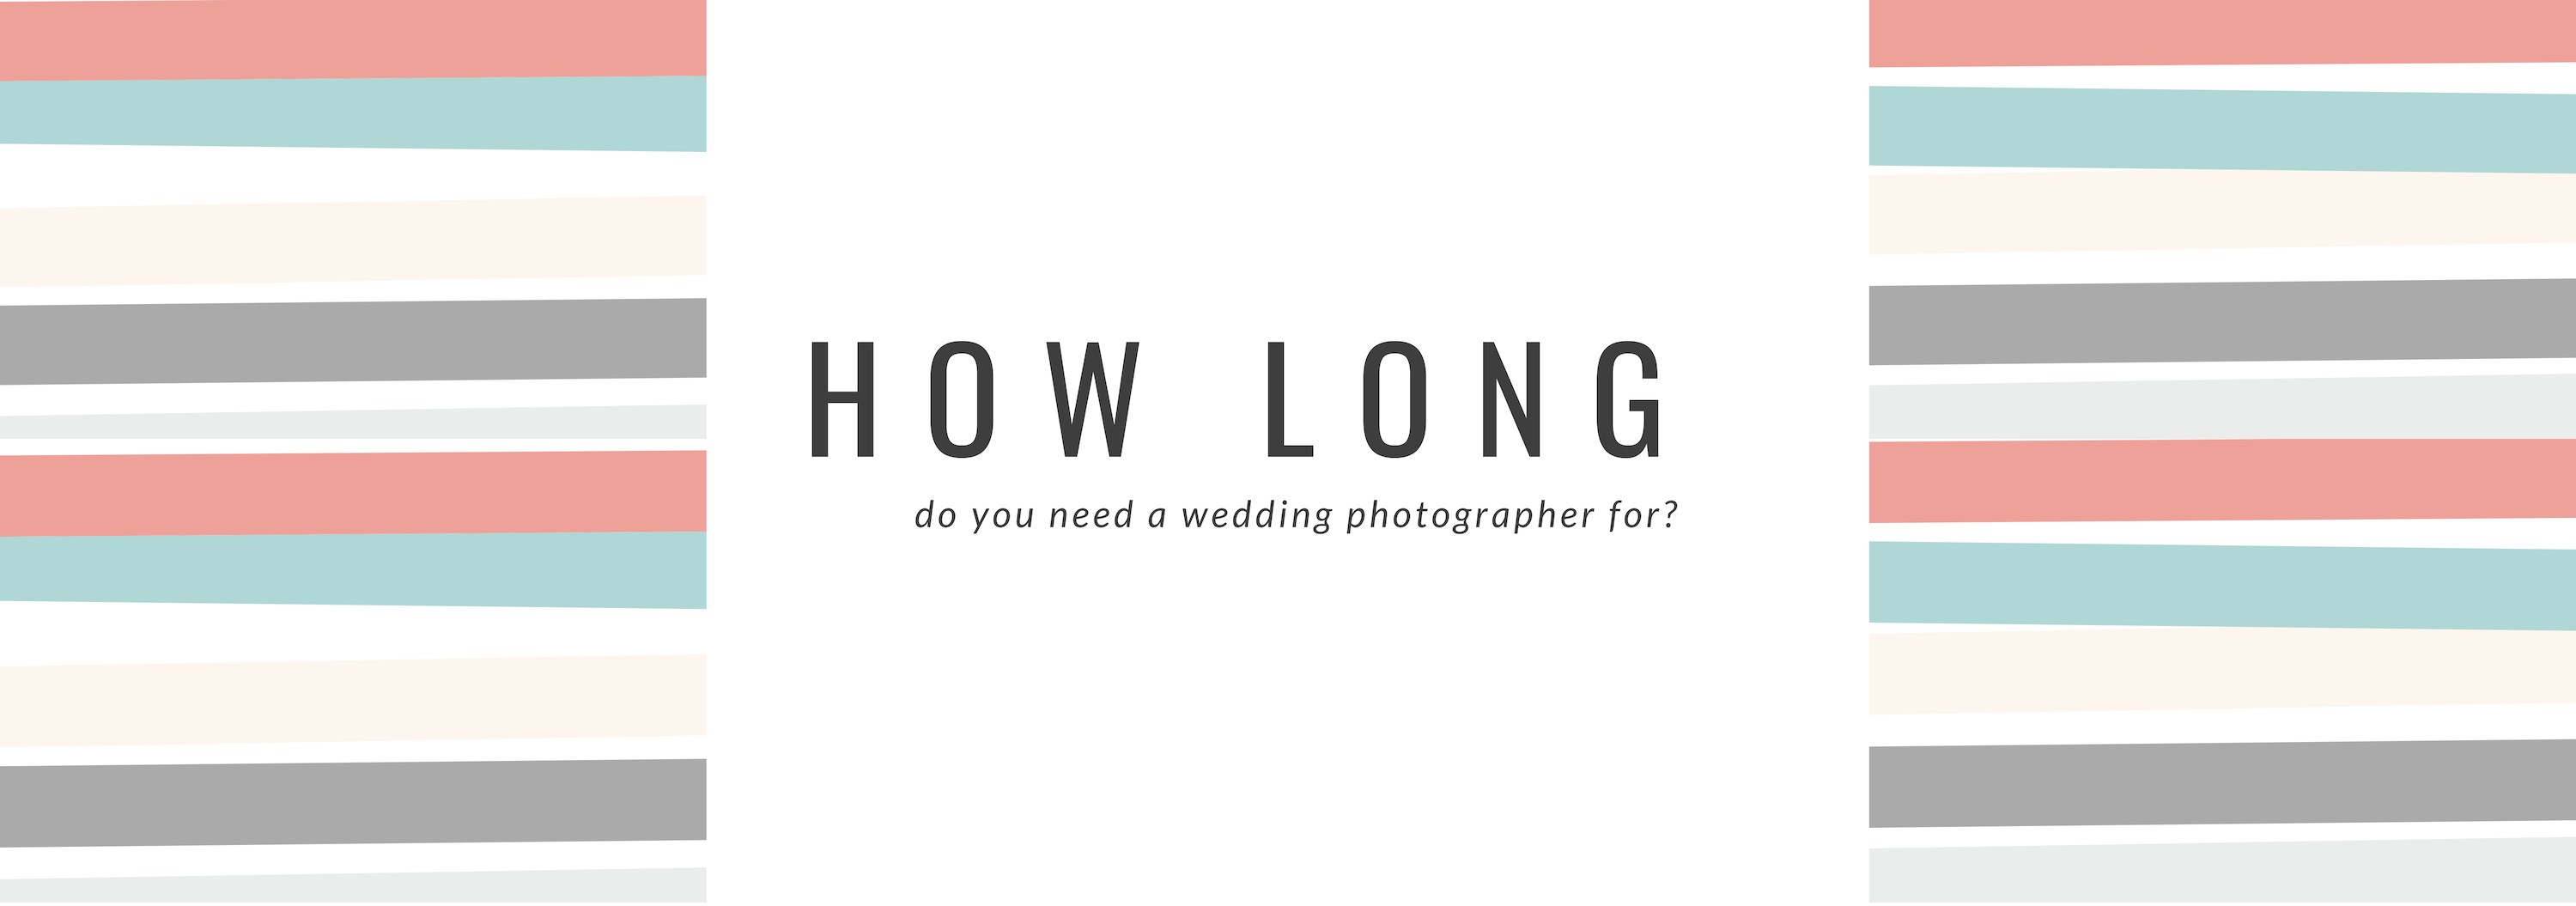 How many hours of photography for wedding